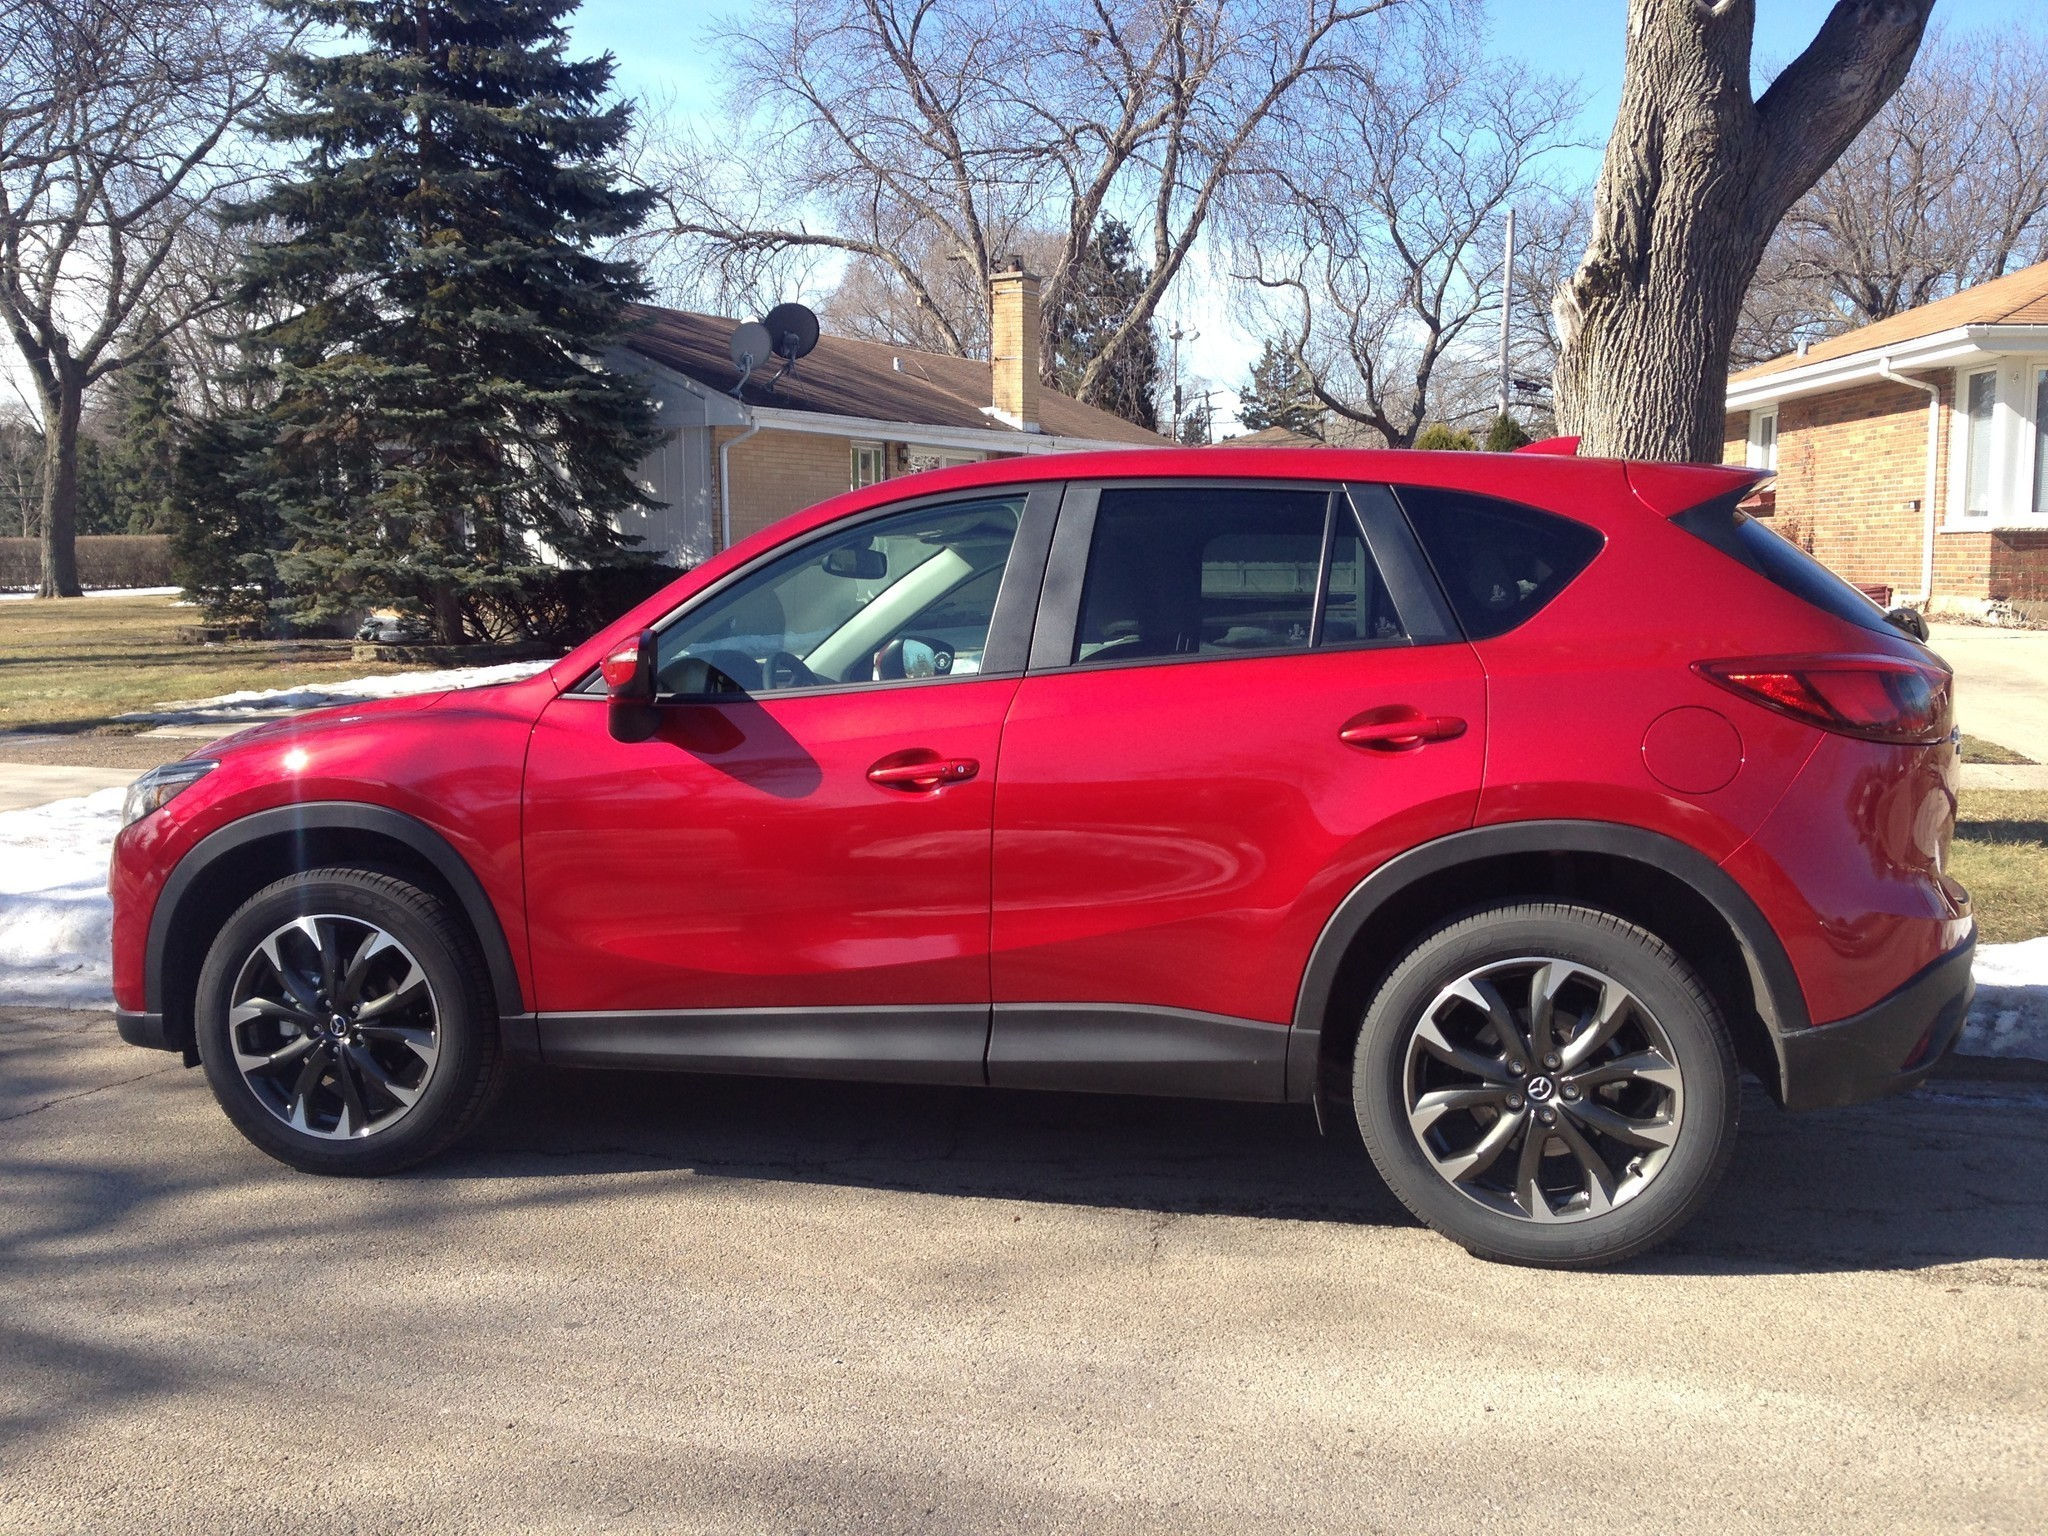 2016 mazda cx-5 refresh upgrades infotainment to luxury level